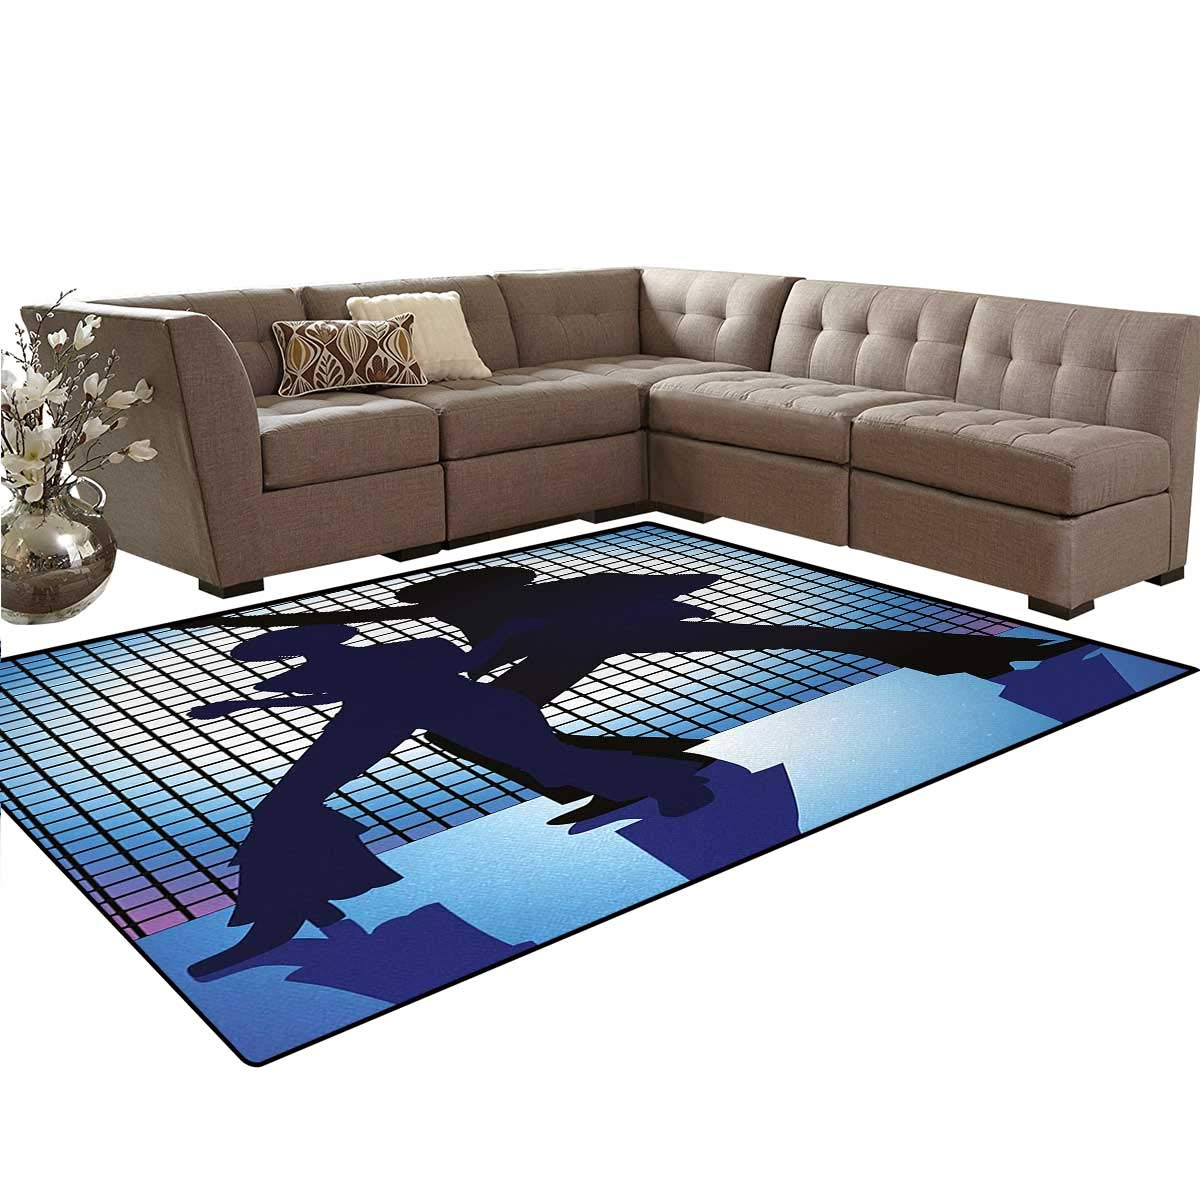 70s Party,Carpet,Couple Silhouettes on The Dance Floor in Night Life Oldies Seventies Fun,Rugs for Living Room,Blue Purple Black,5'x6'